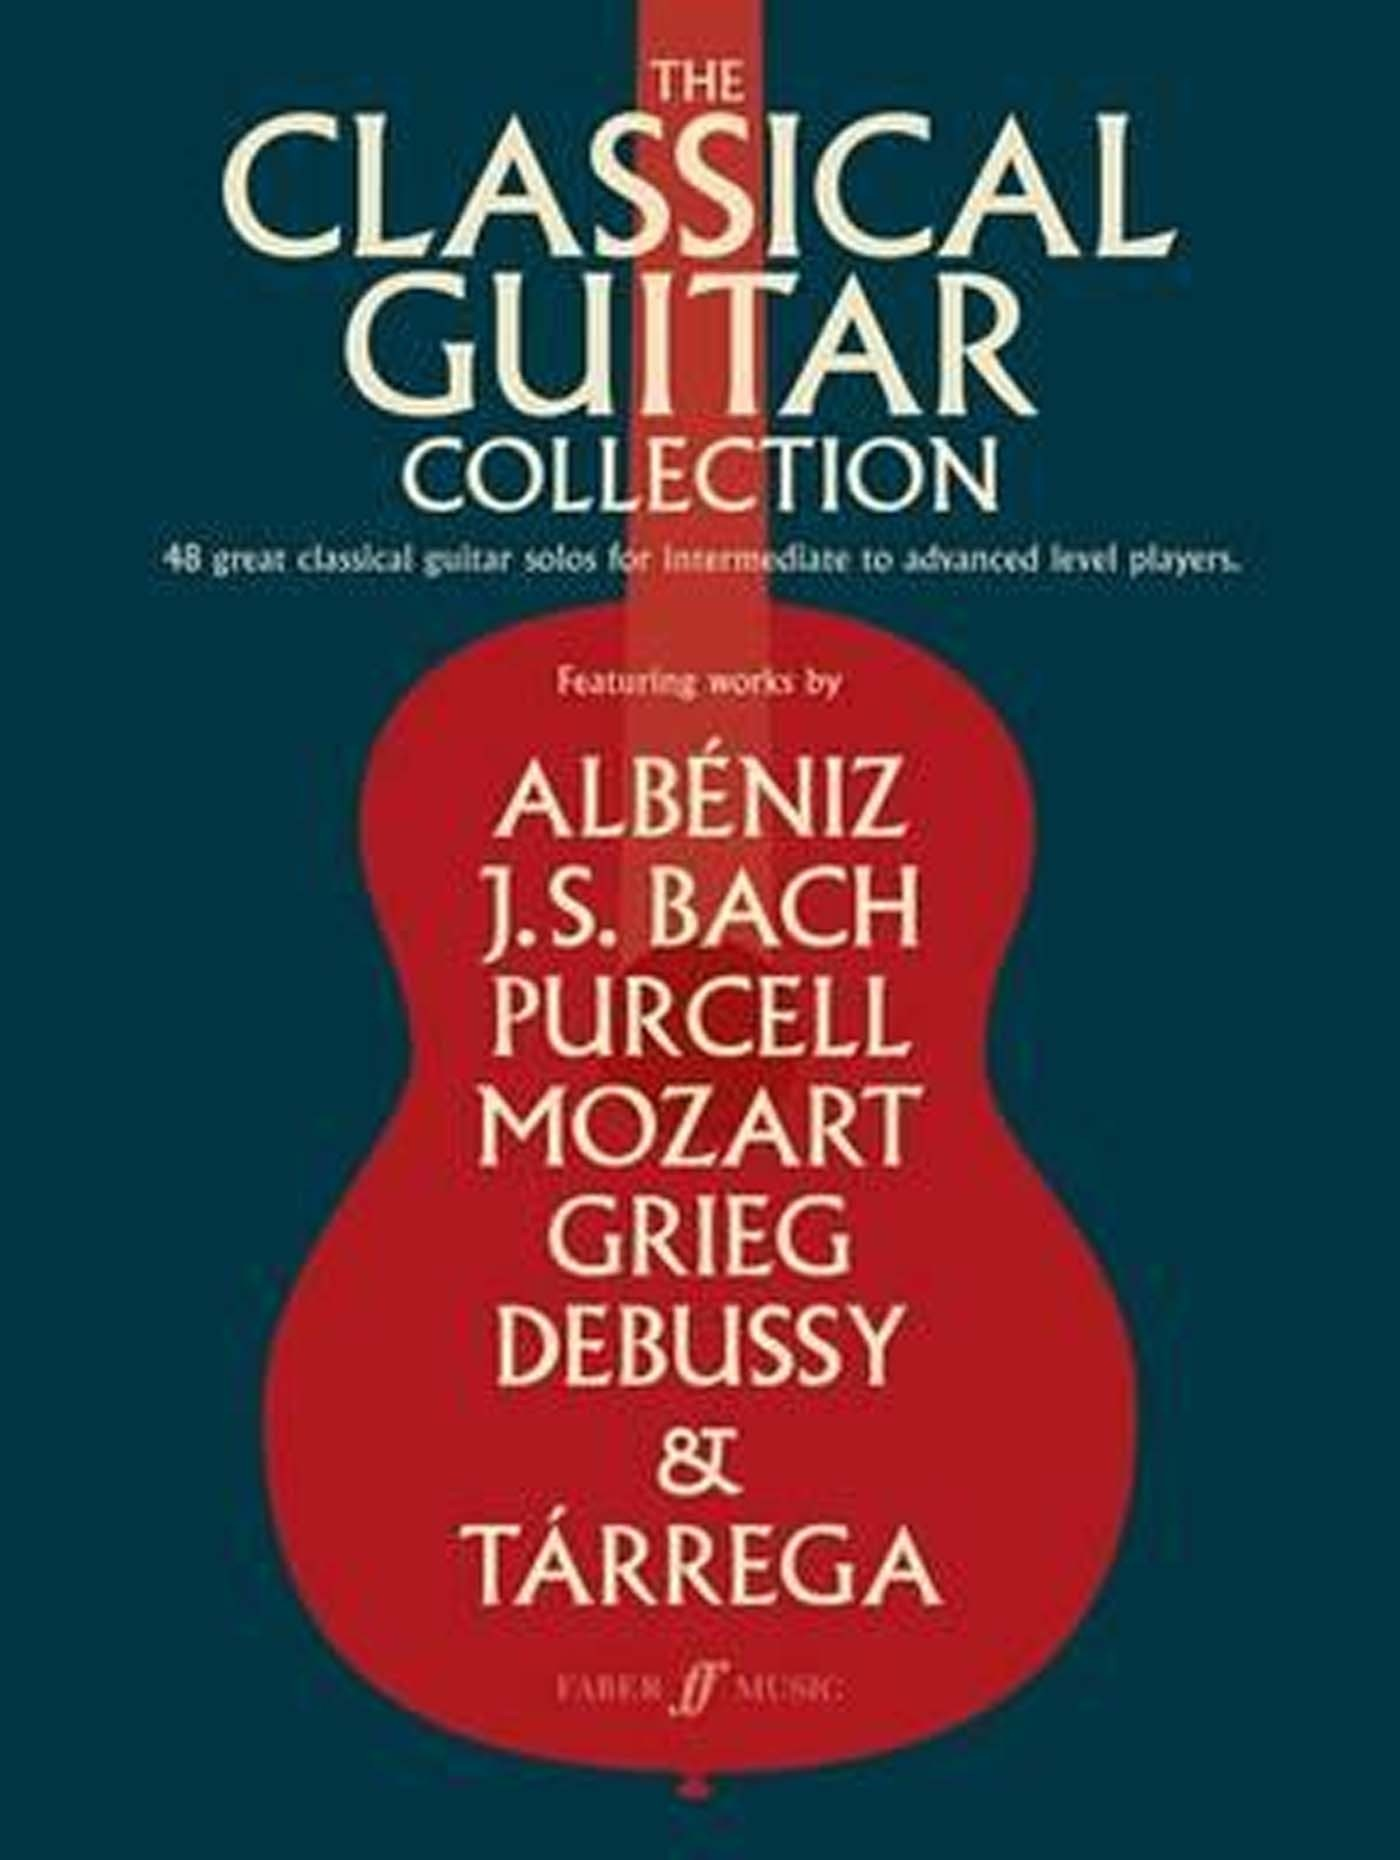 The Classical Guitar Collection Book 48 Solo Intermediate - Advanced S147